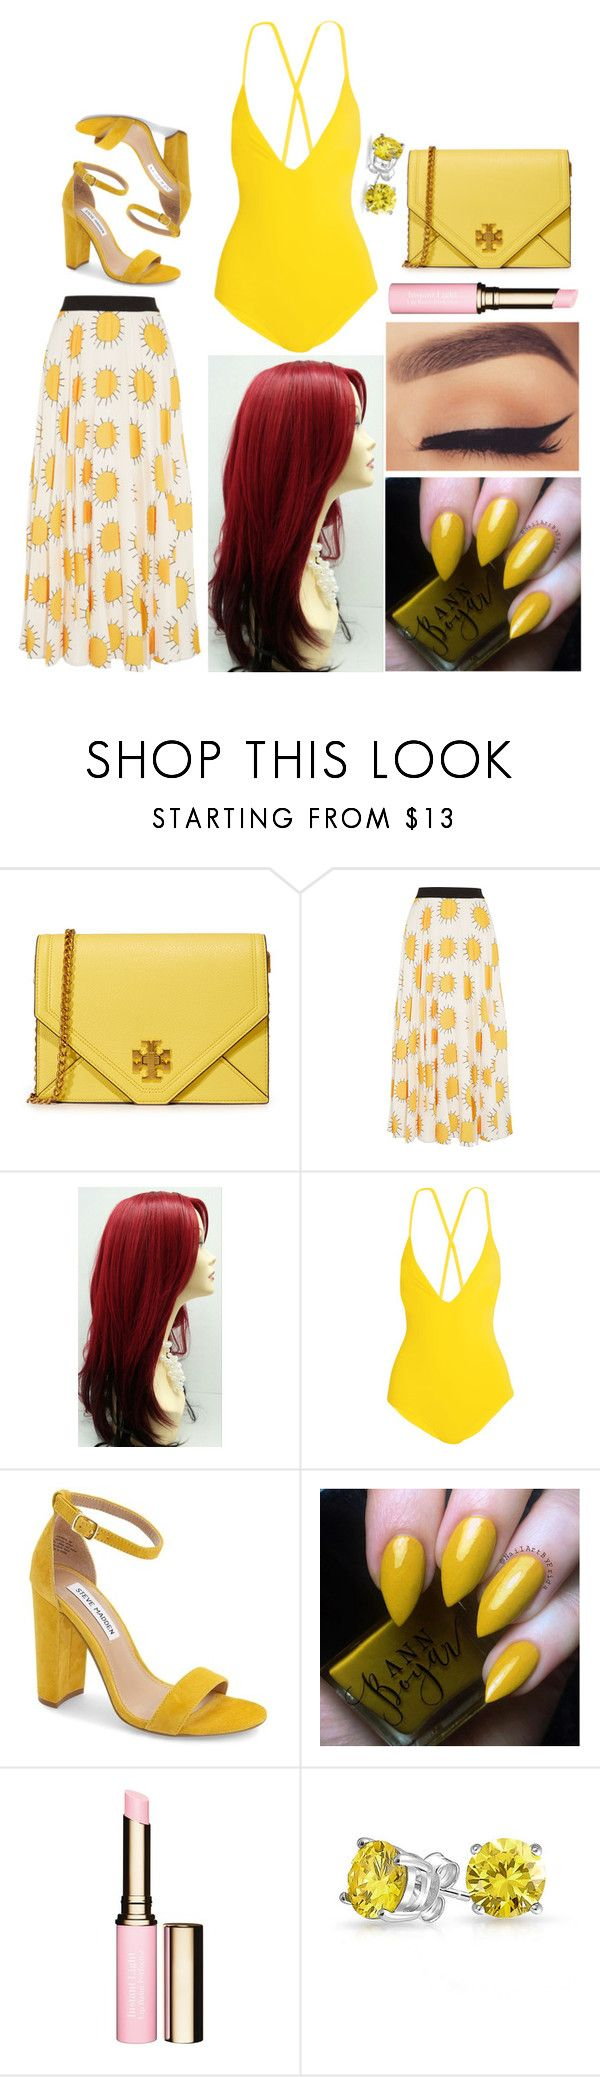 """""""Emma: August 25, 2017"""" by disneyfreaks39 ❤ liked on Polyvore featuring Tory Burch, Christopher Kane, Emma Pake, Steve Madden, Clarins and Bling Jewelry"""